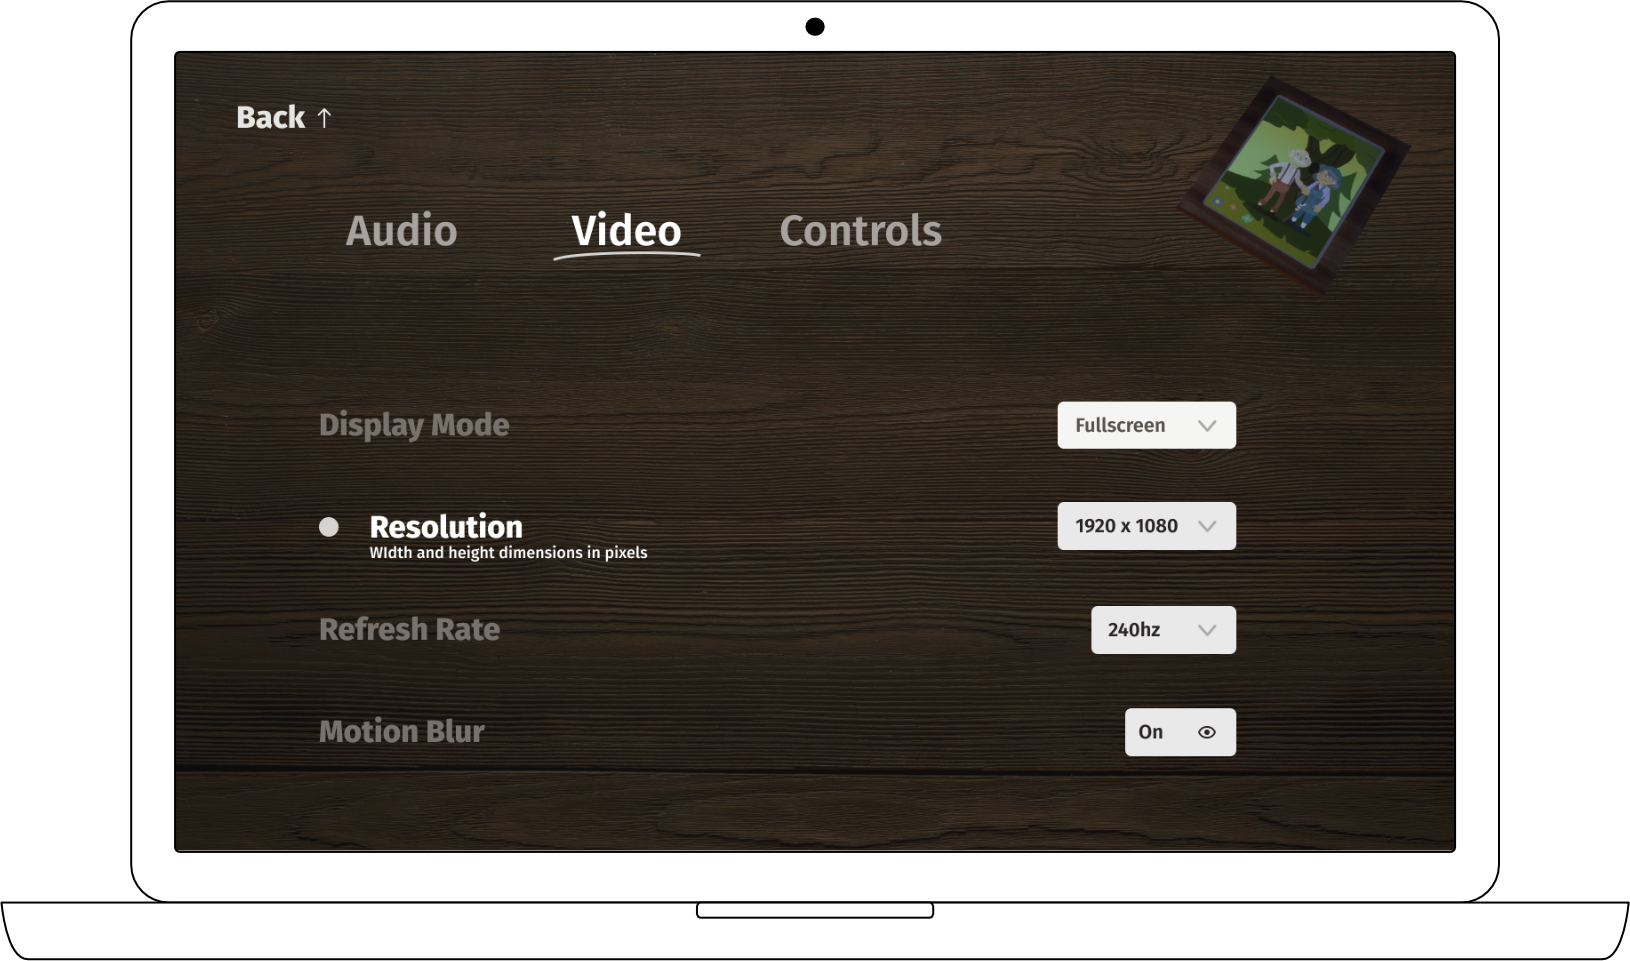 UI mockup for video settings page